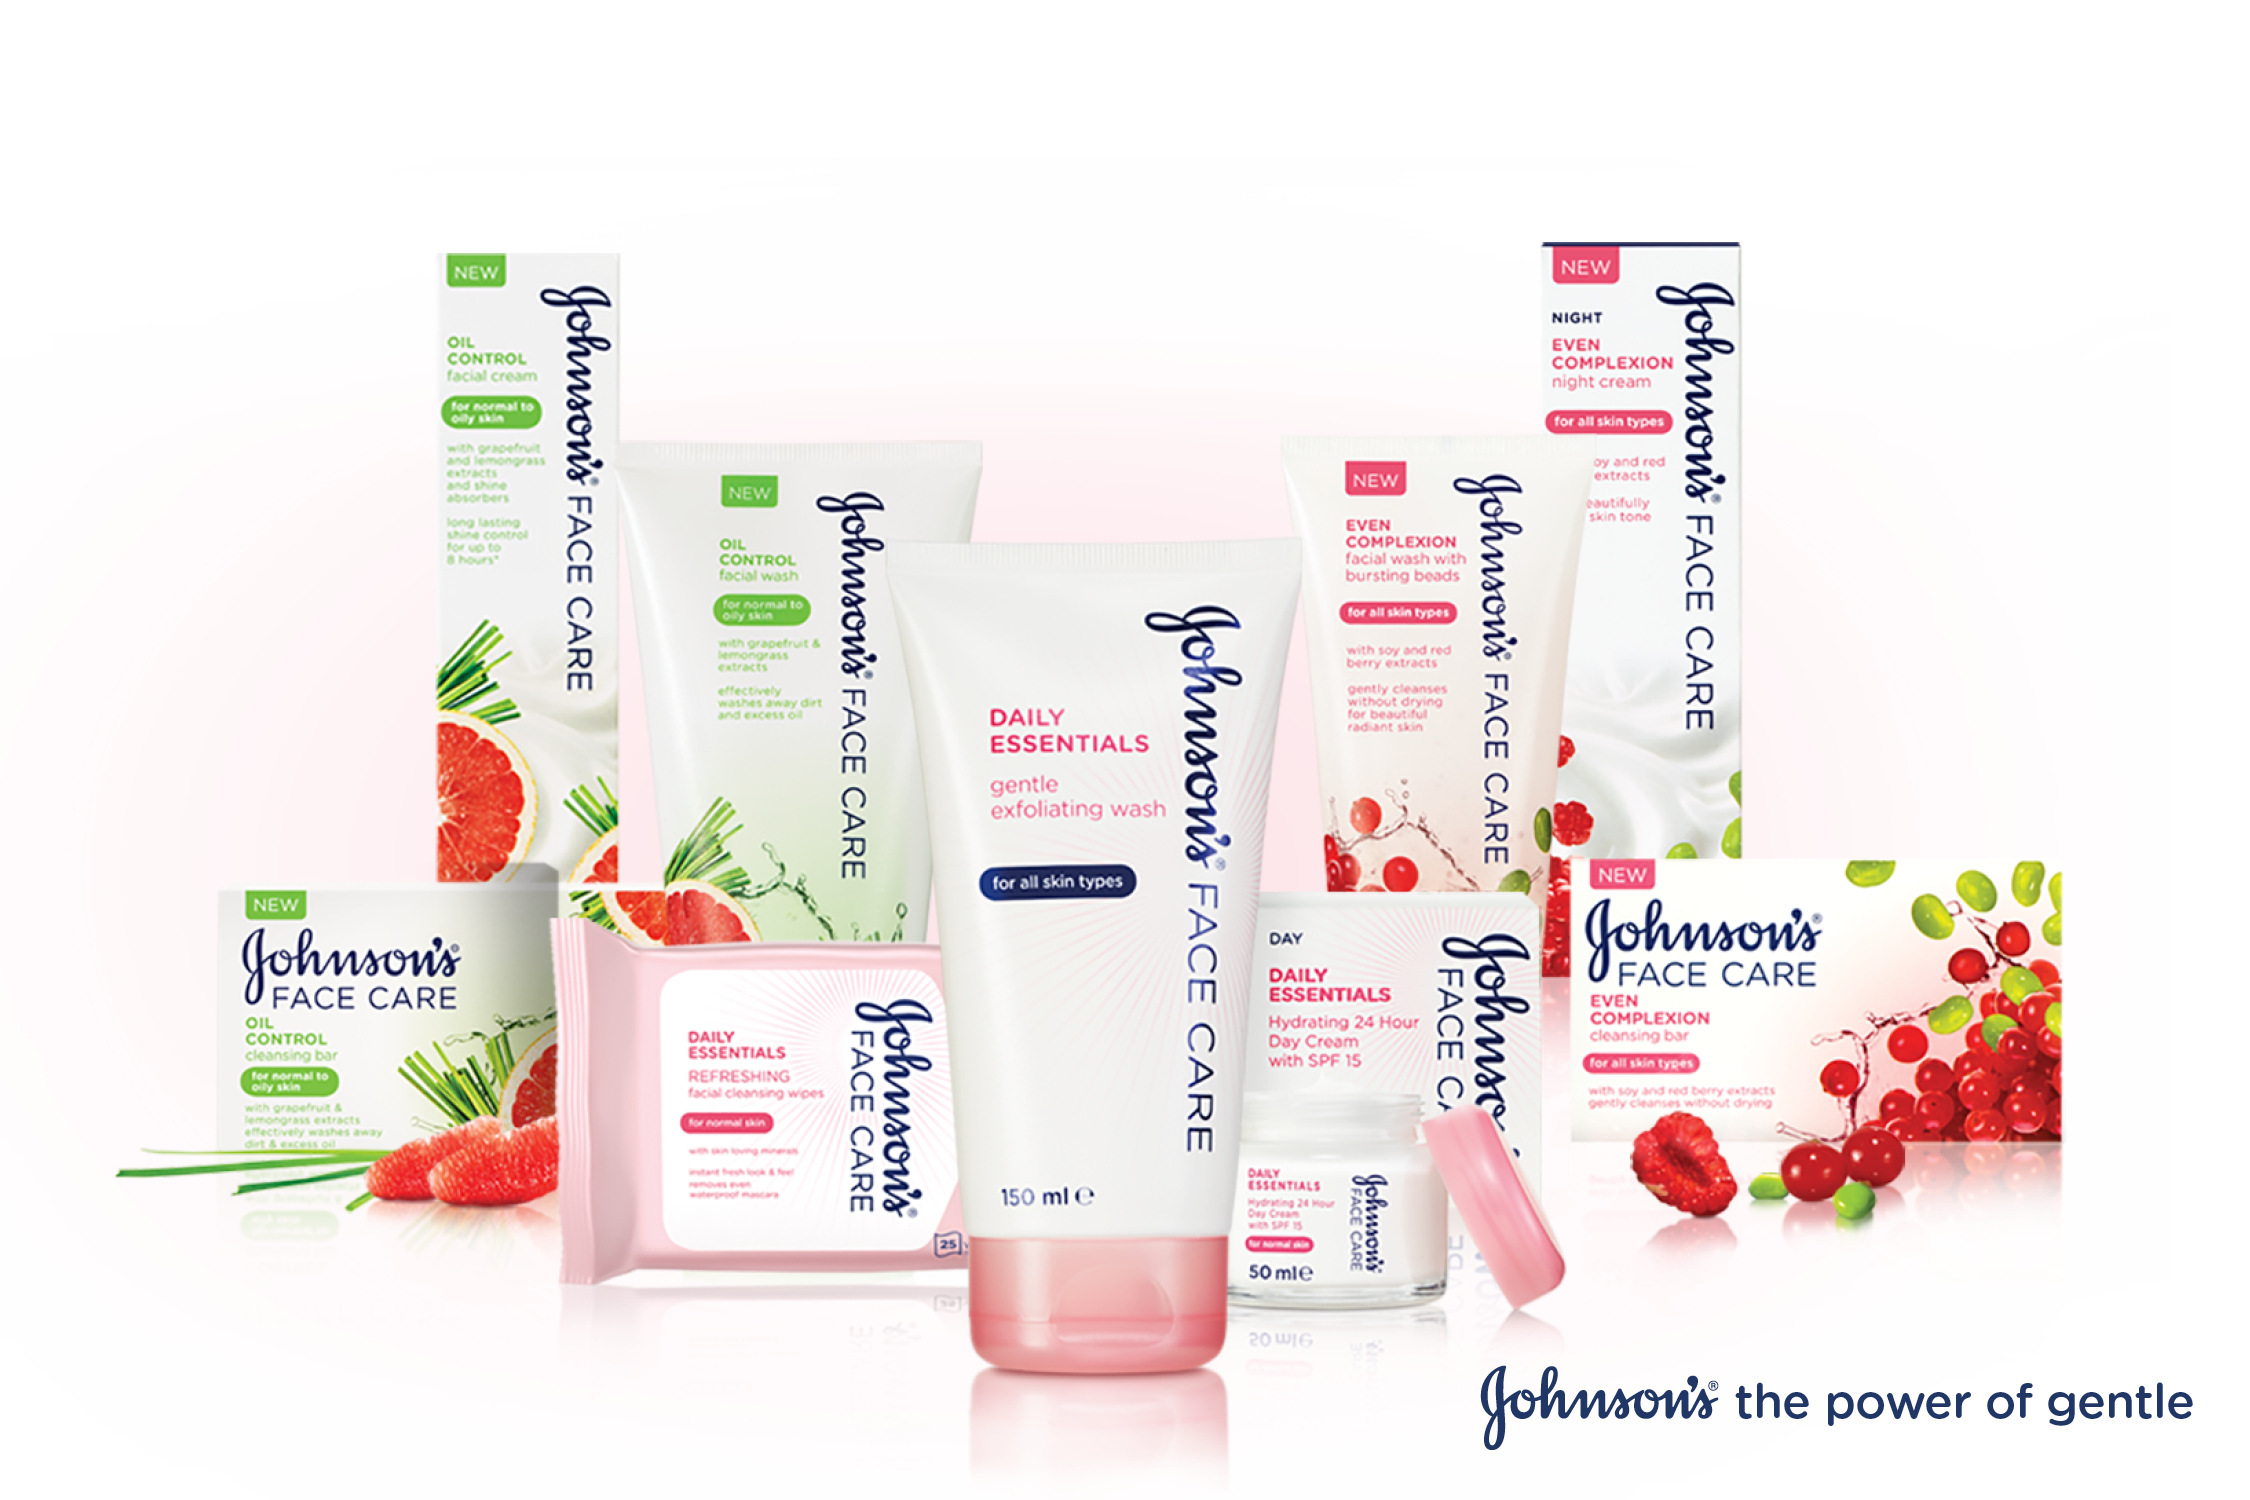 Johnson's facecare product range image